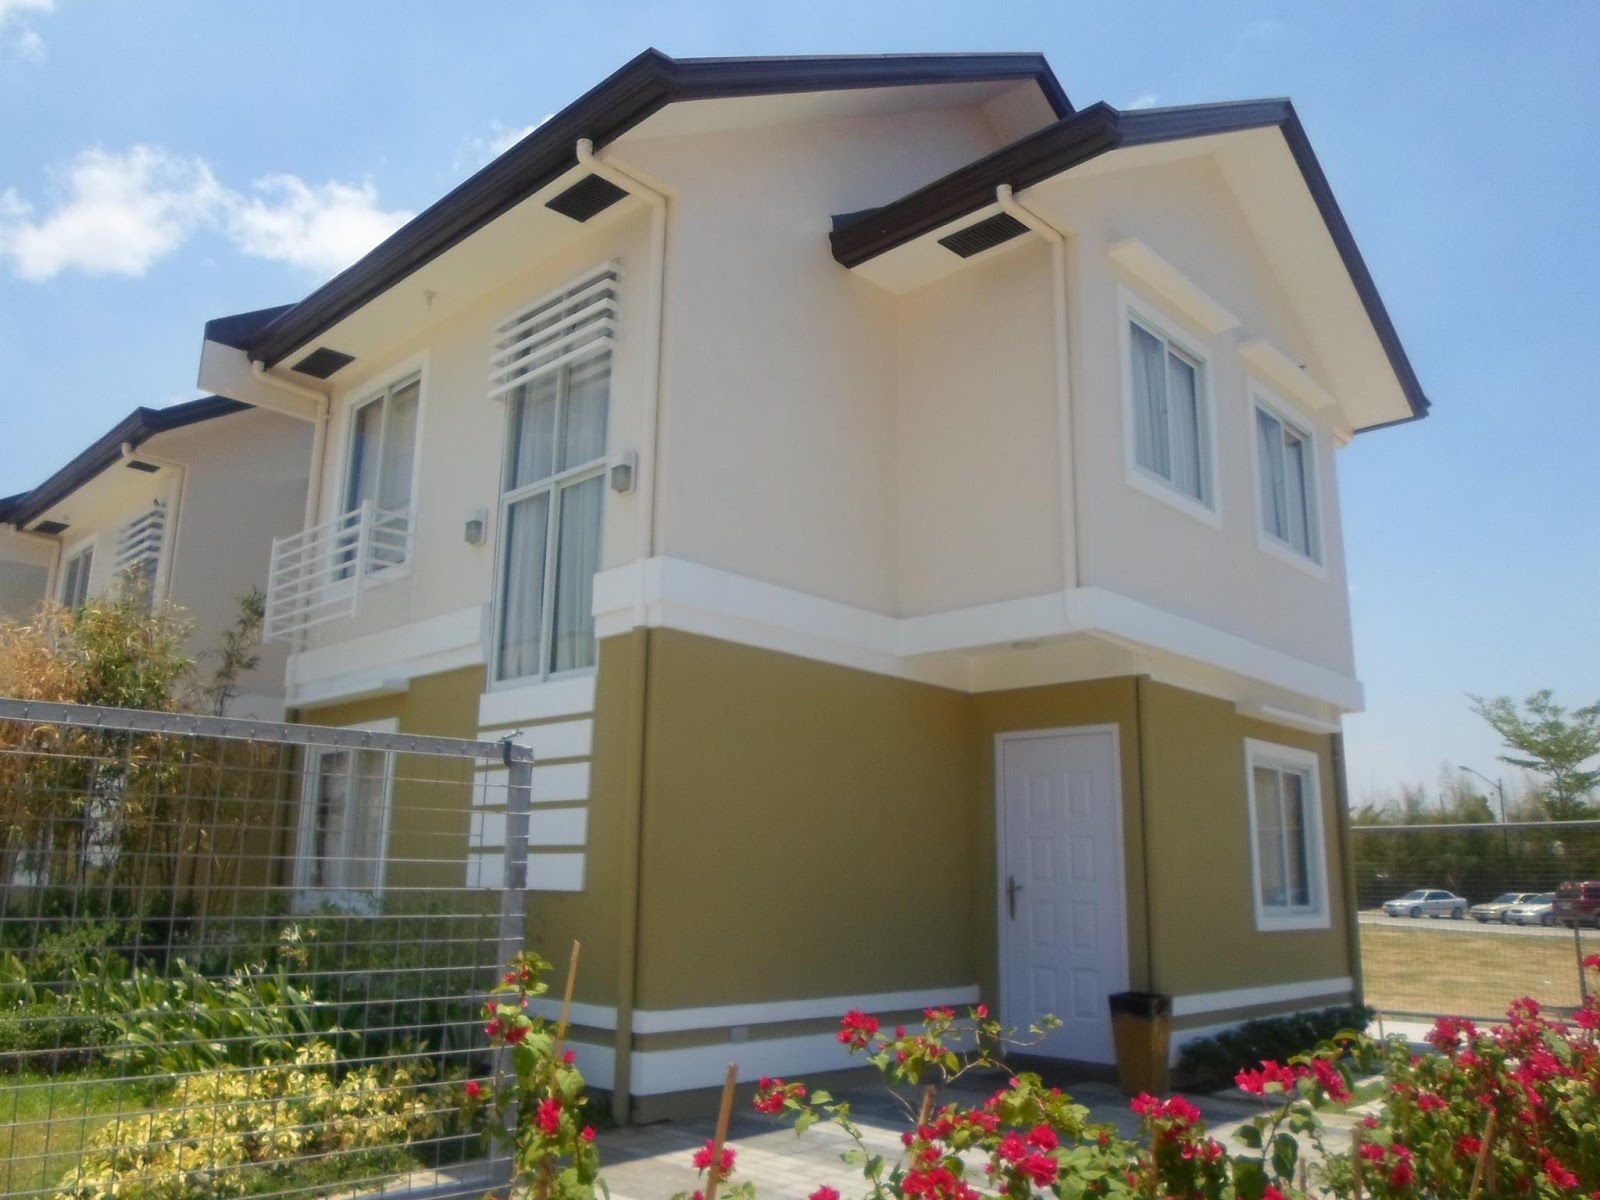 Affordable house design in the philippines lancaster new for Latest model house design